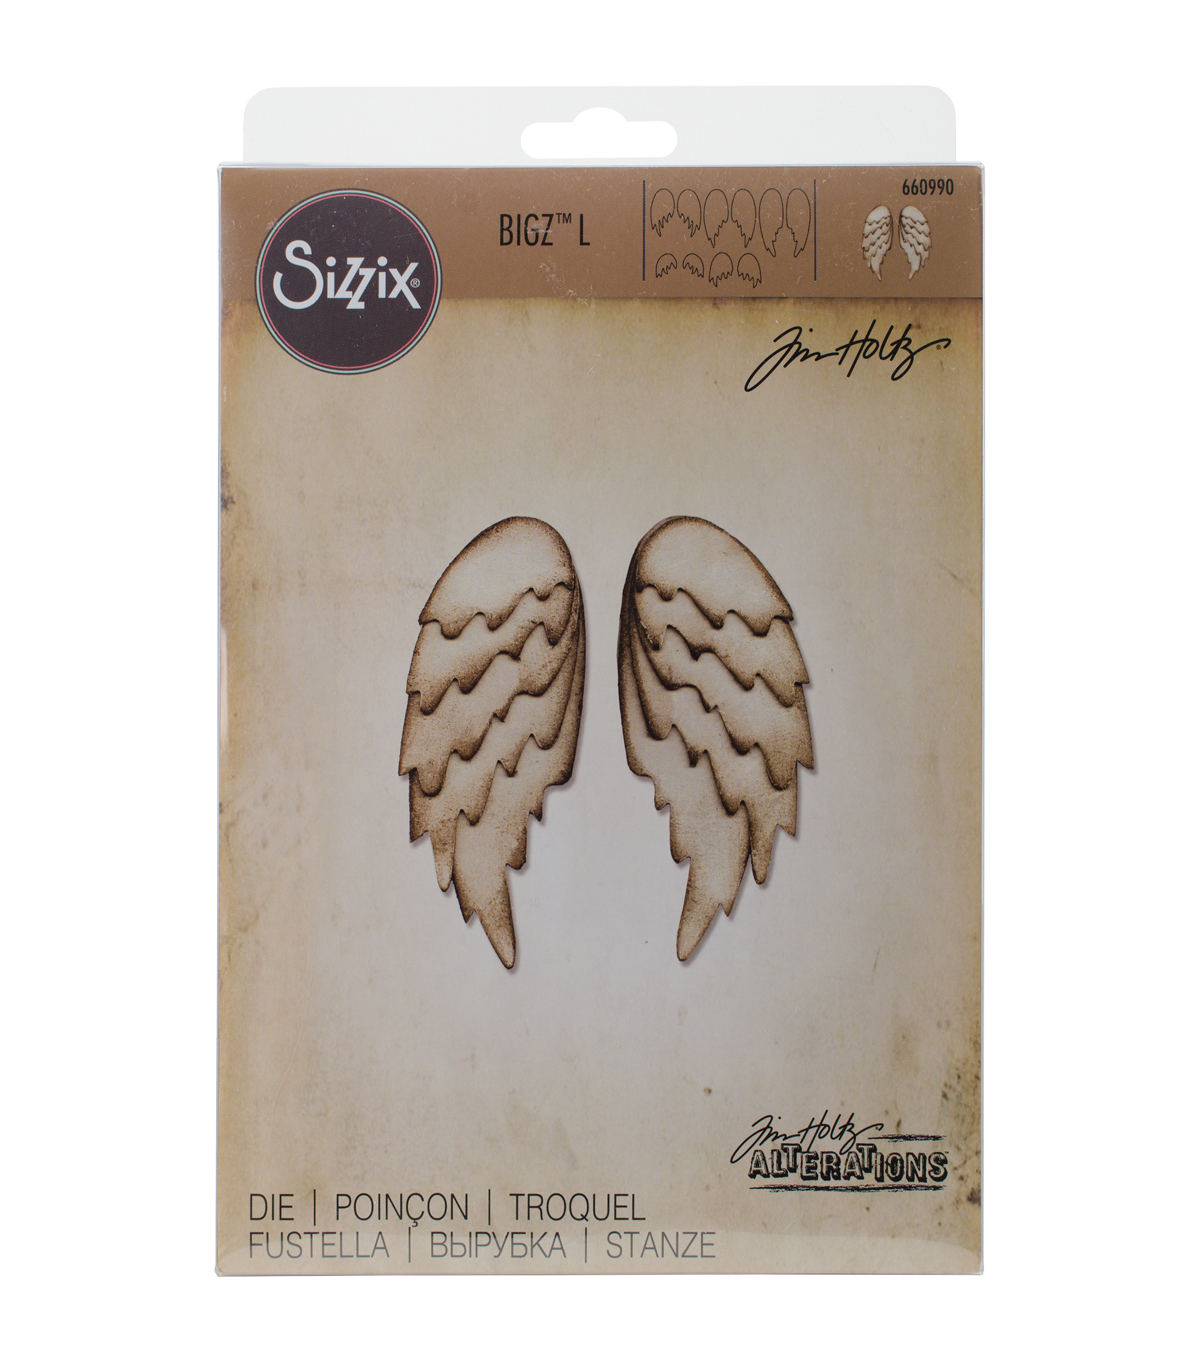 Sizzix Bigz Large Die-Feathered Wings